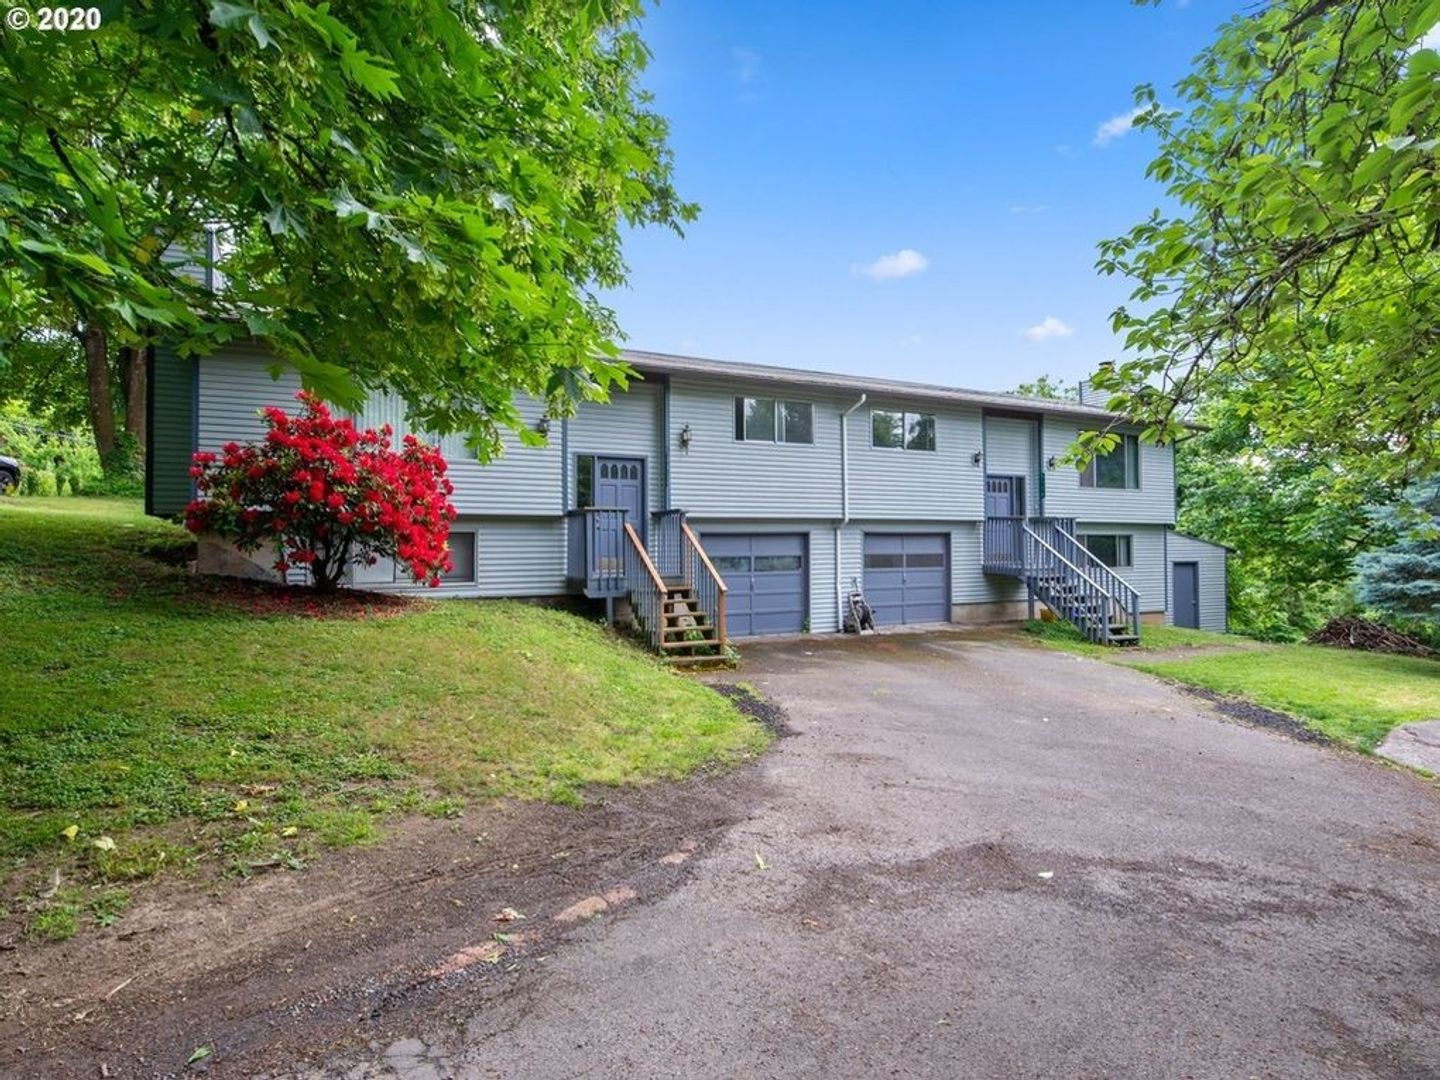 House for Rent in Milwaukie